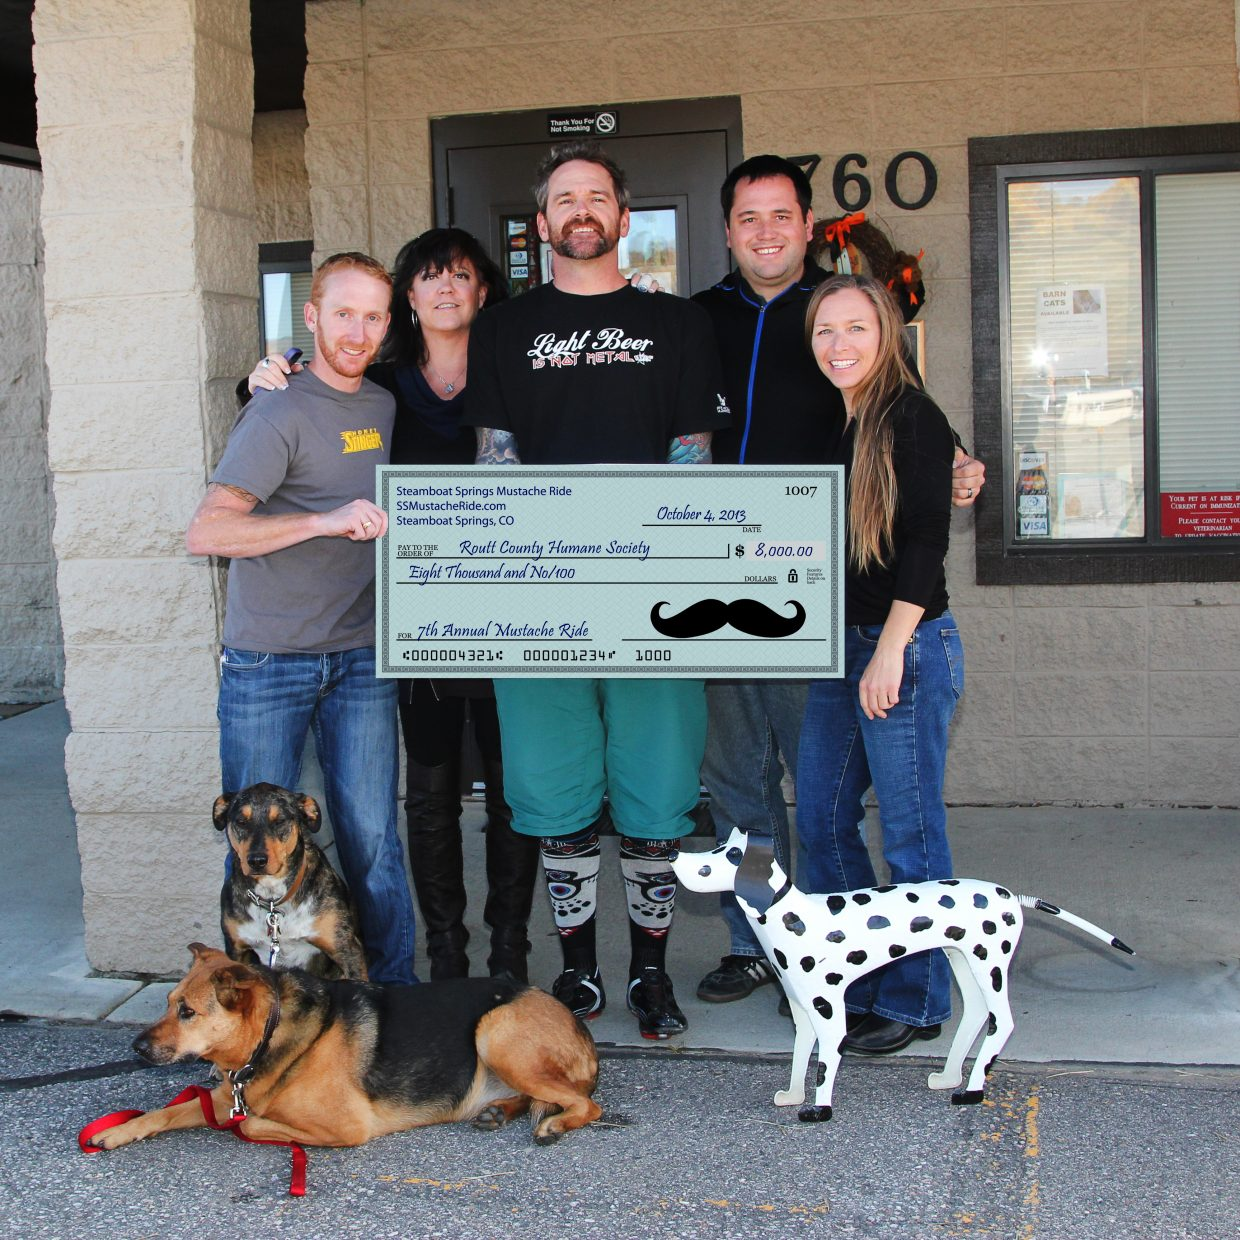 The seventh annual Mustache Ride raised $8,000 for the Steamboat Springs Humane Society. Pictured from left are Nate Bird, Lisa Archer Leach, Rob Peterson, Casey Barnett and Holly Larson.